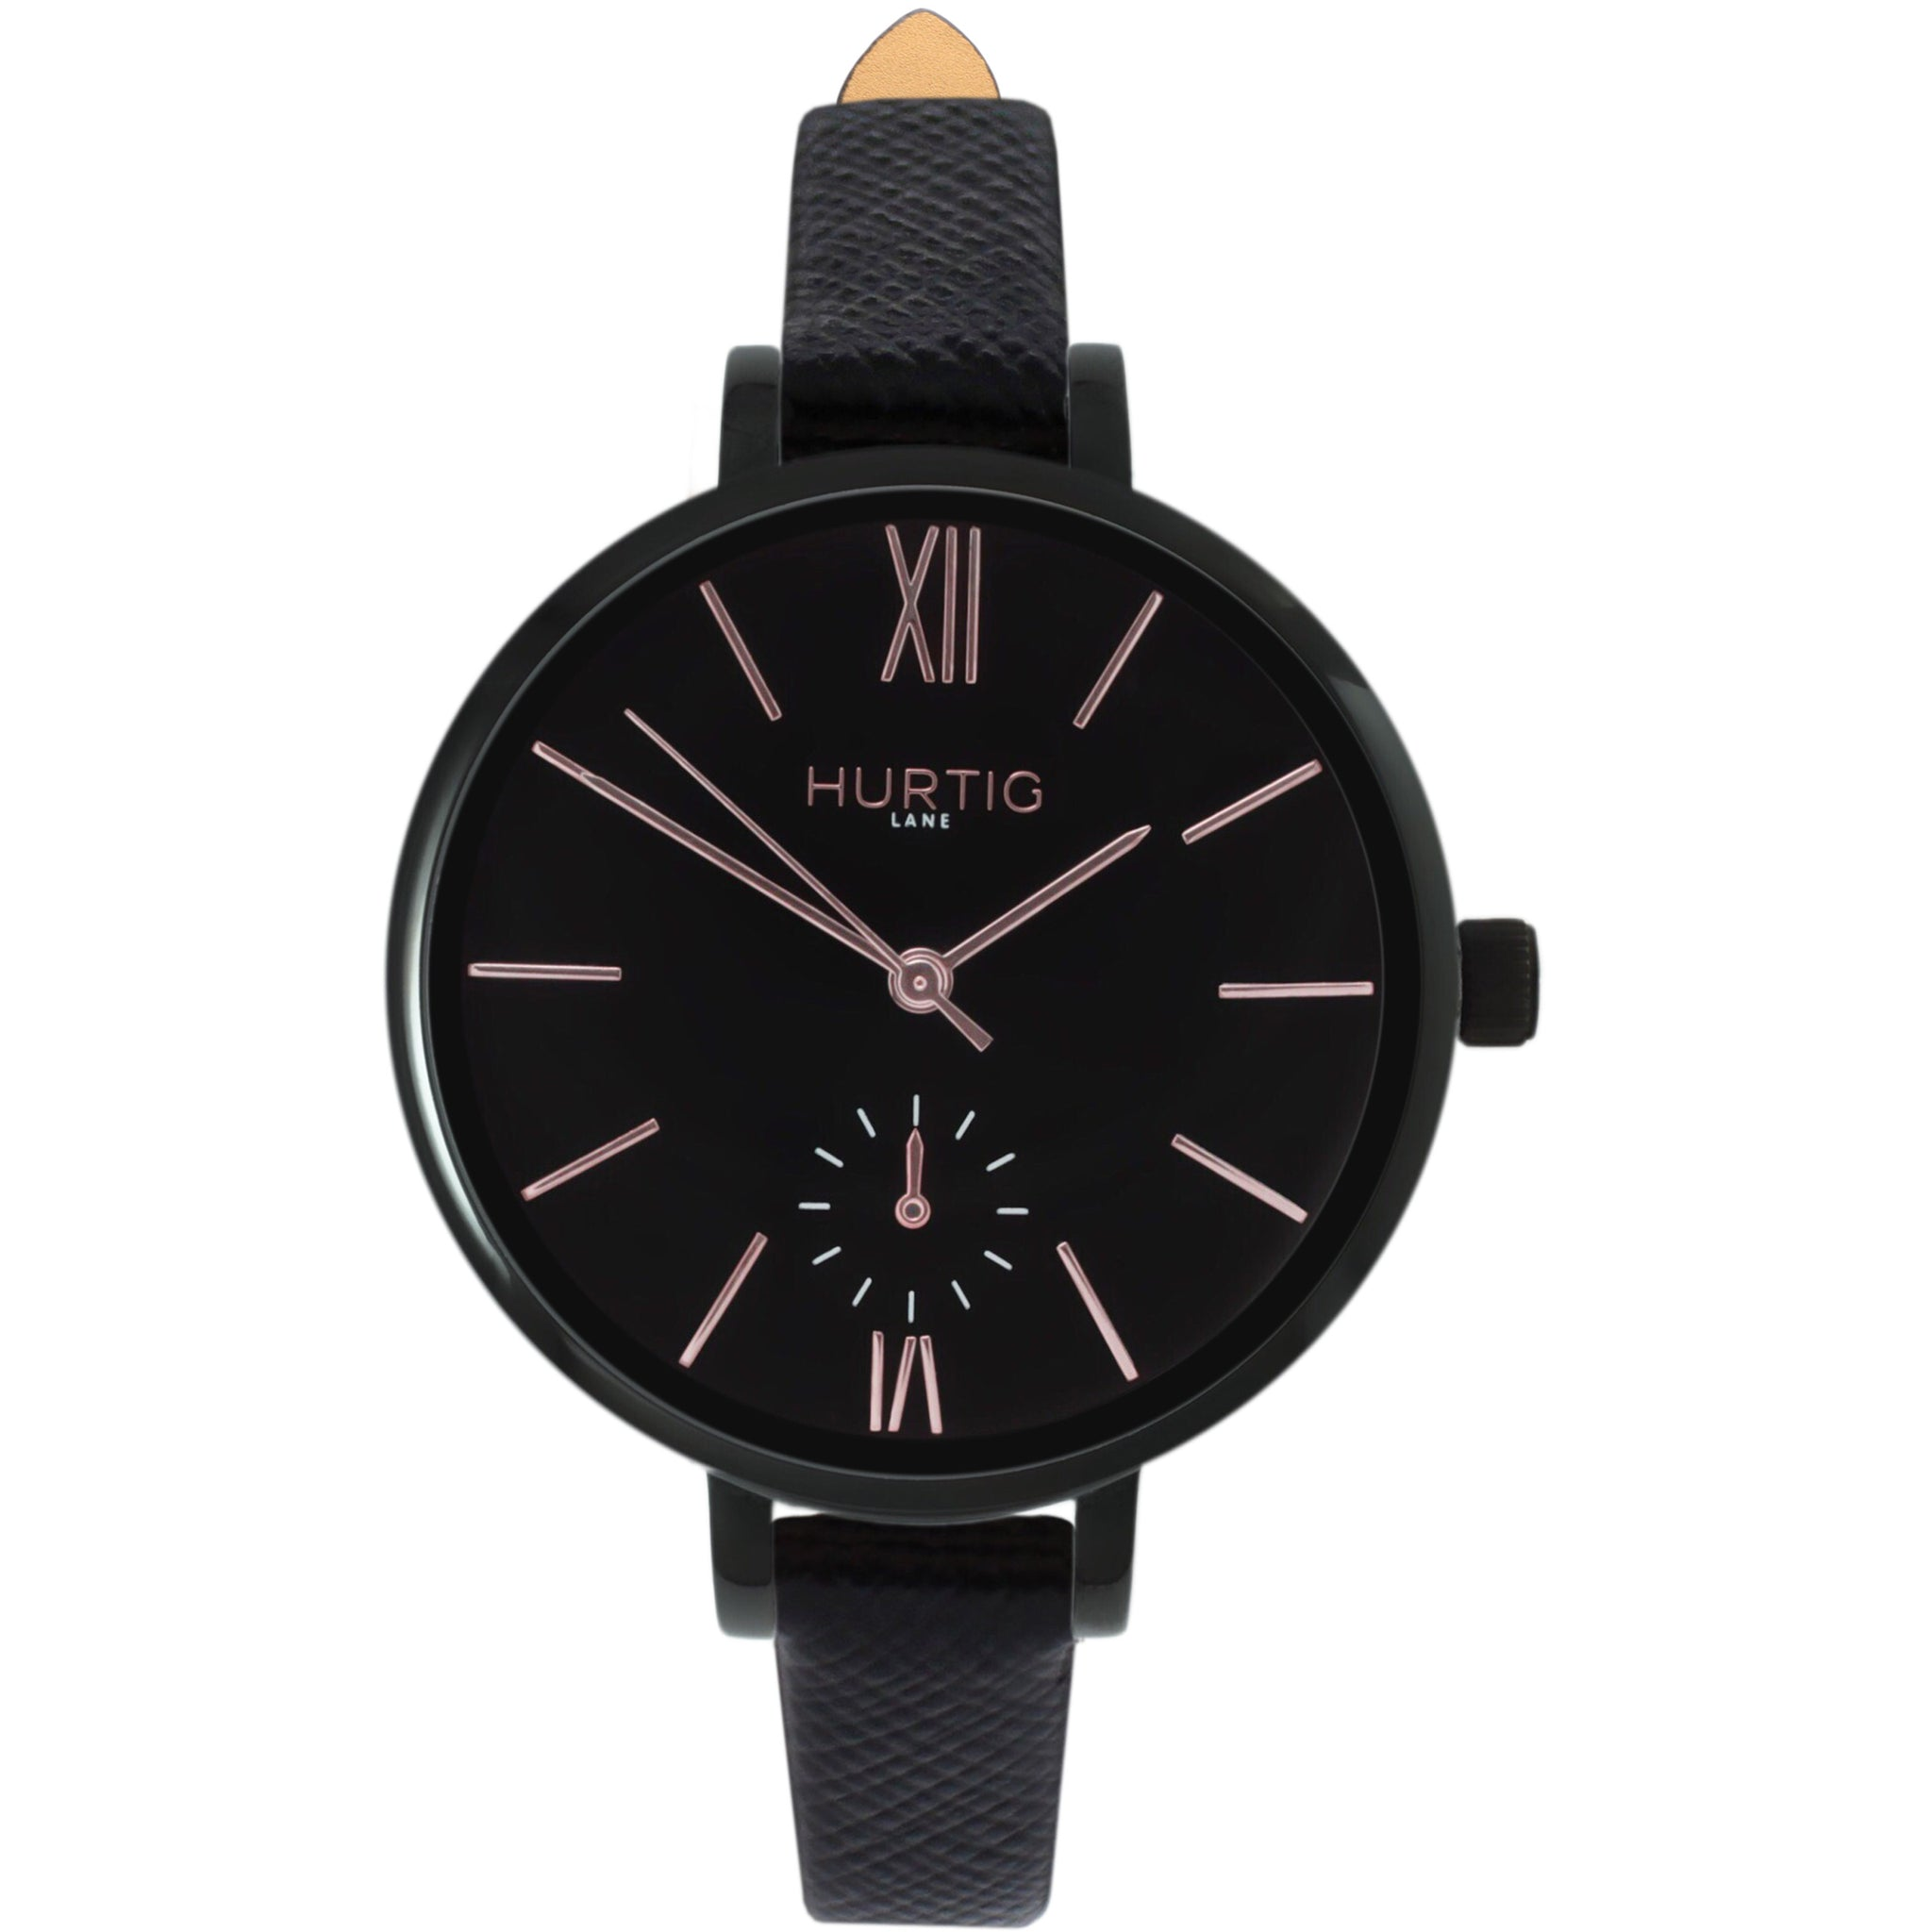 AMALFI WOMEN'S WATCH, BLACK/BLACK/BLACK